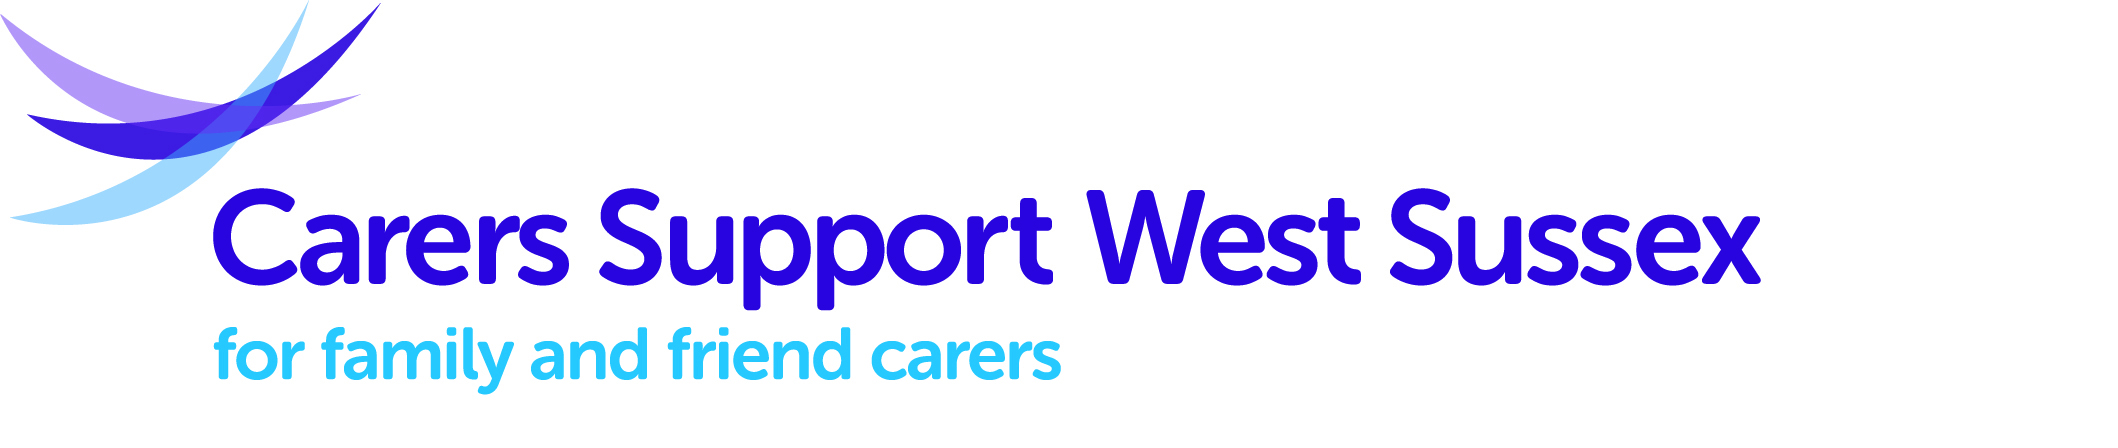 Carers Support West Sussex logo